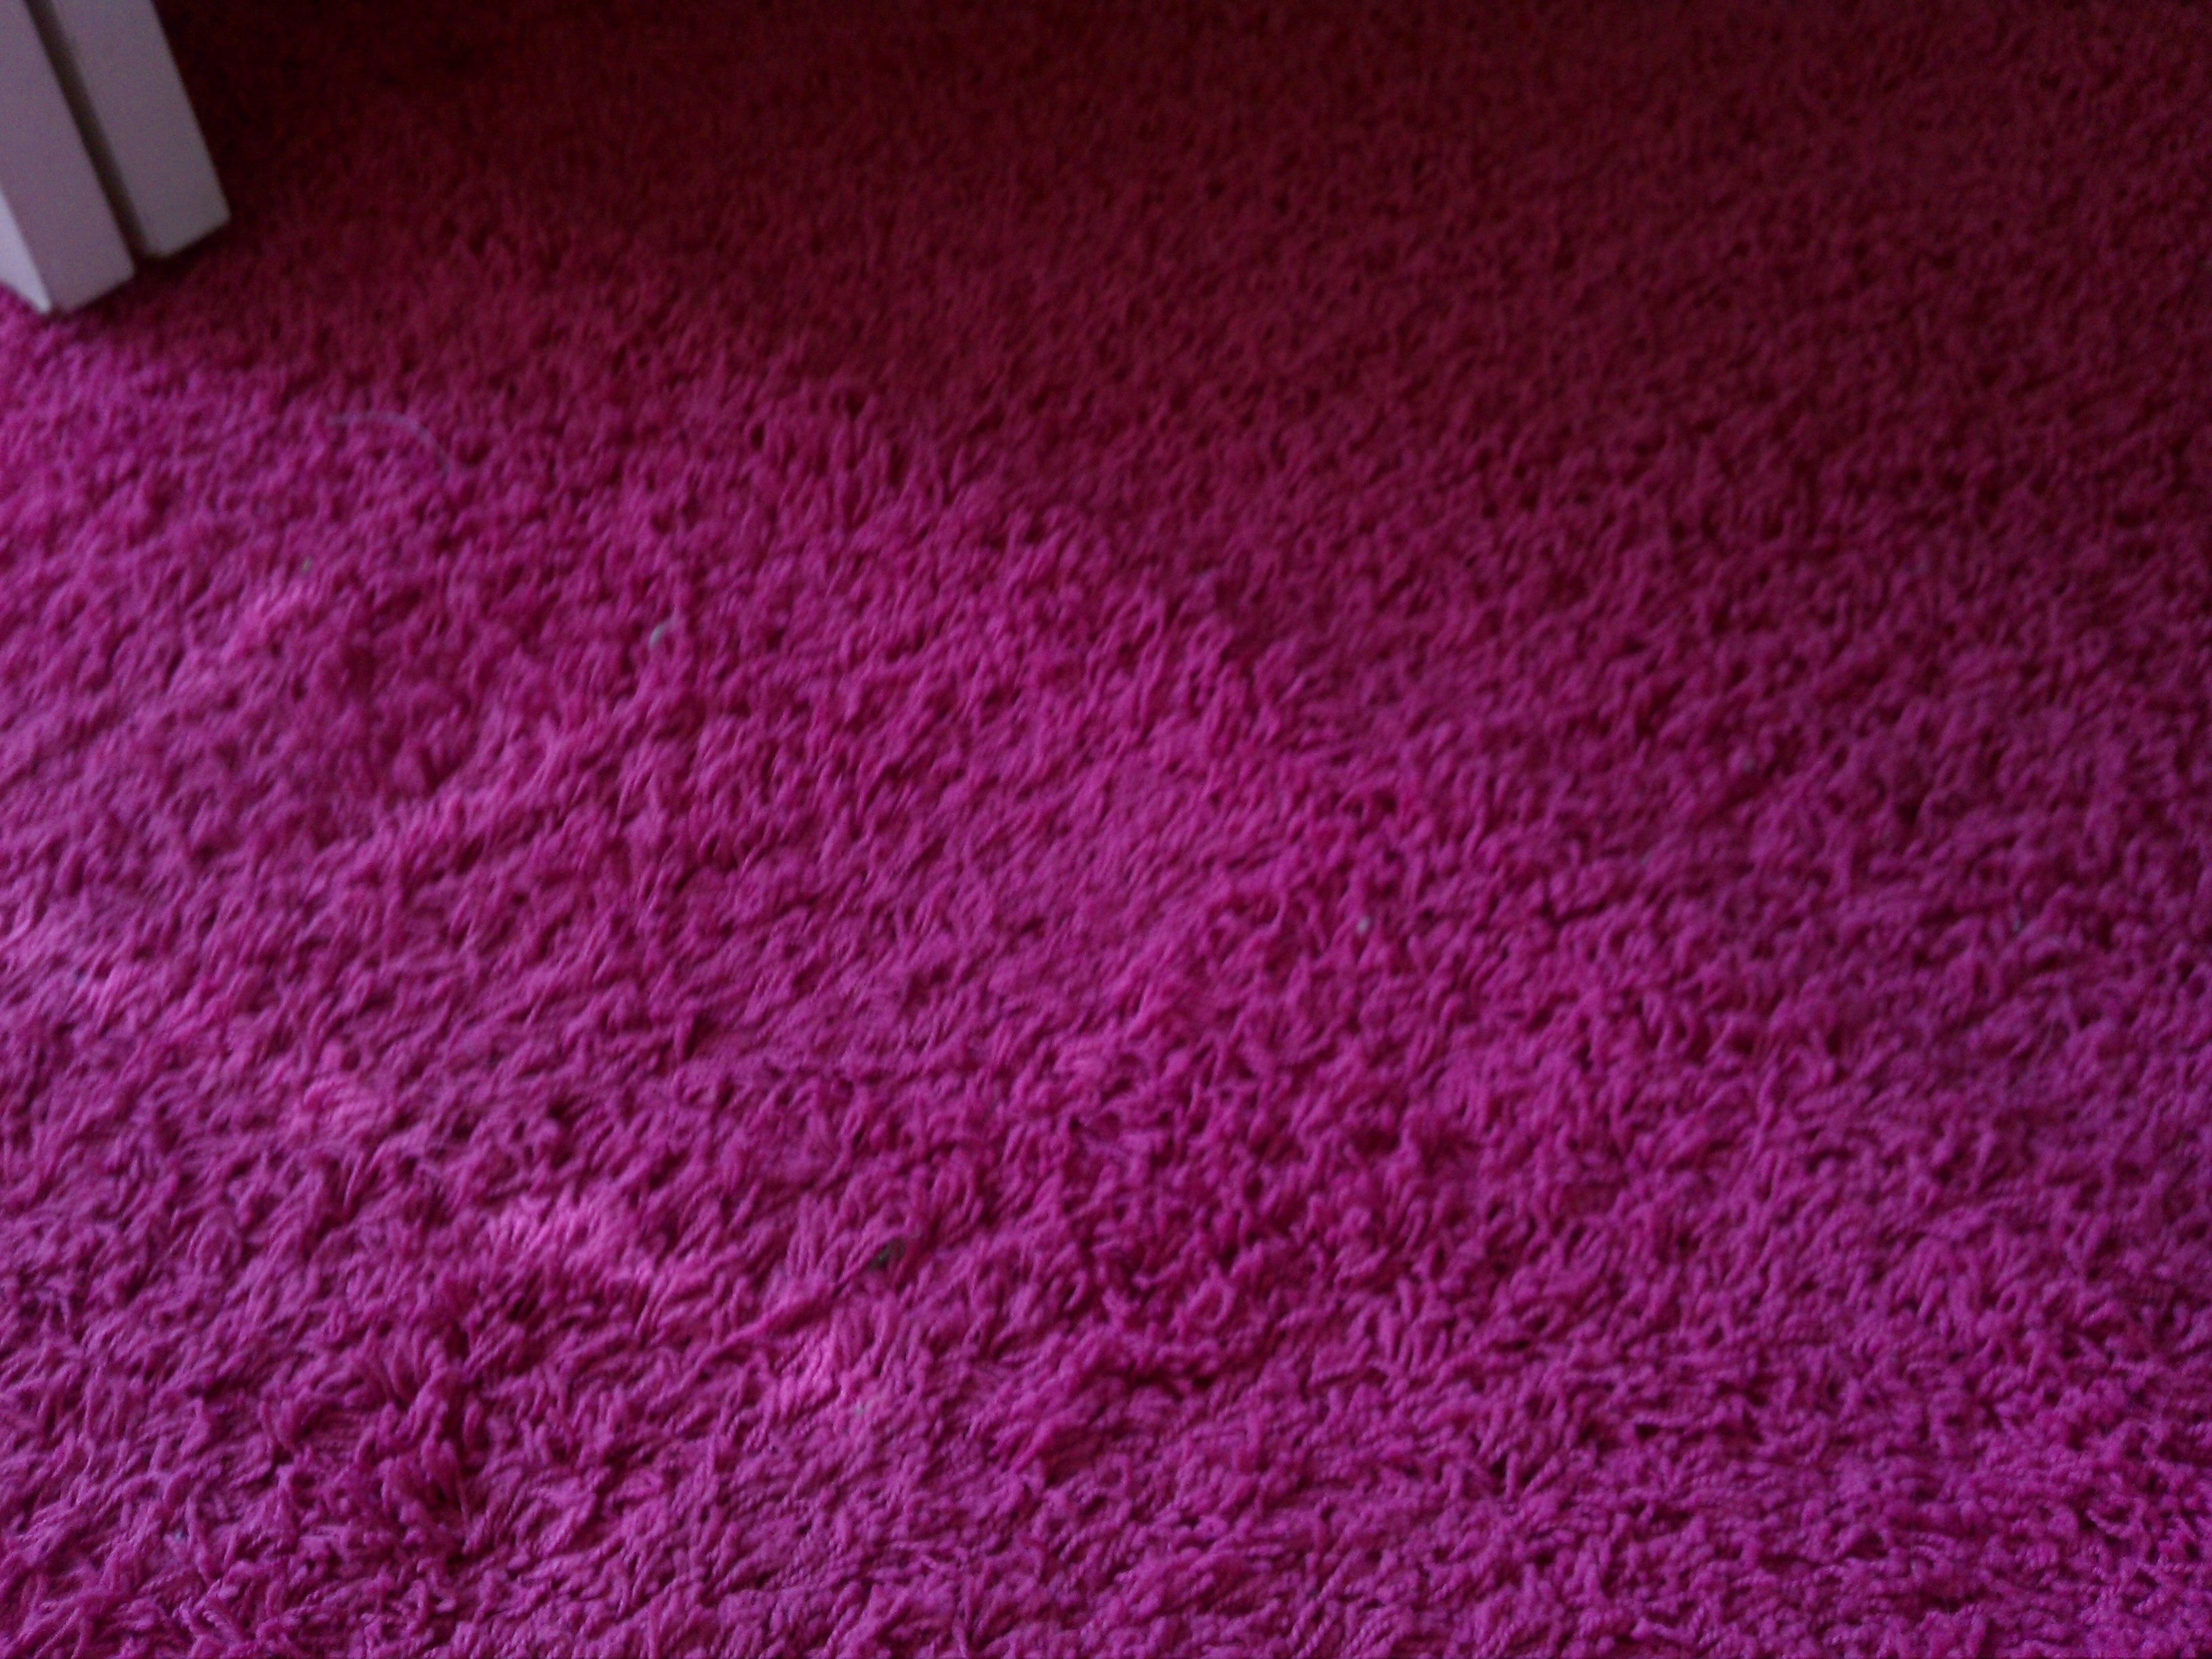 Hot Pink Carpet This Is Beautiful Carpet Pinterest With Fuschia Pink Carpets (Image 8 of 15)